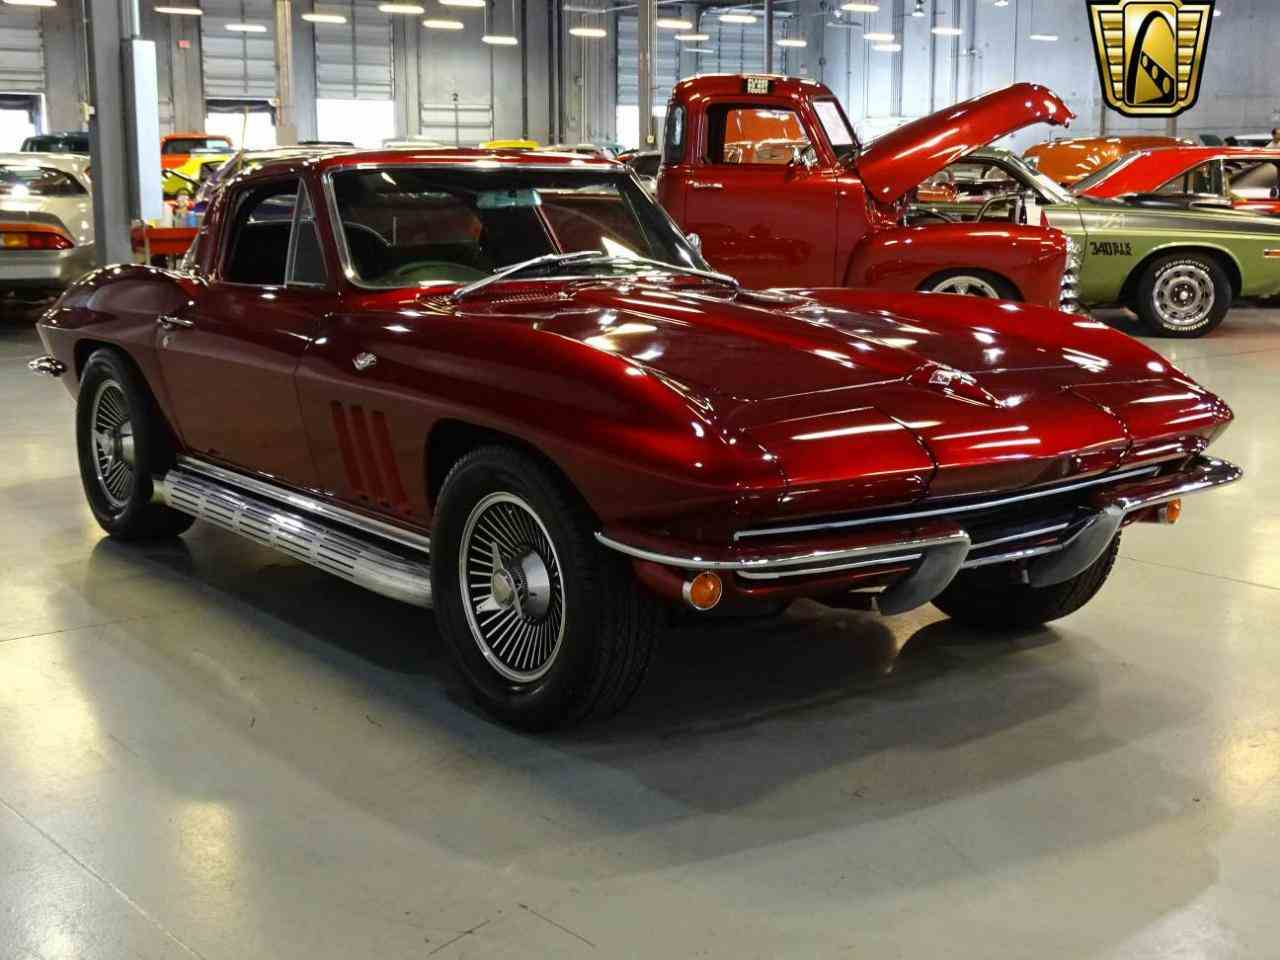 Large Picture of 1965 Chevrolet Corvette located in Lake Mary Florida - $74,000.00 - KKM4